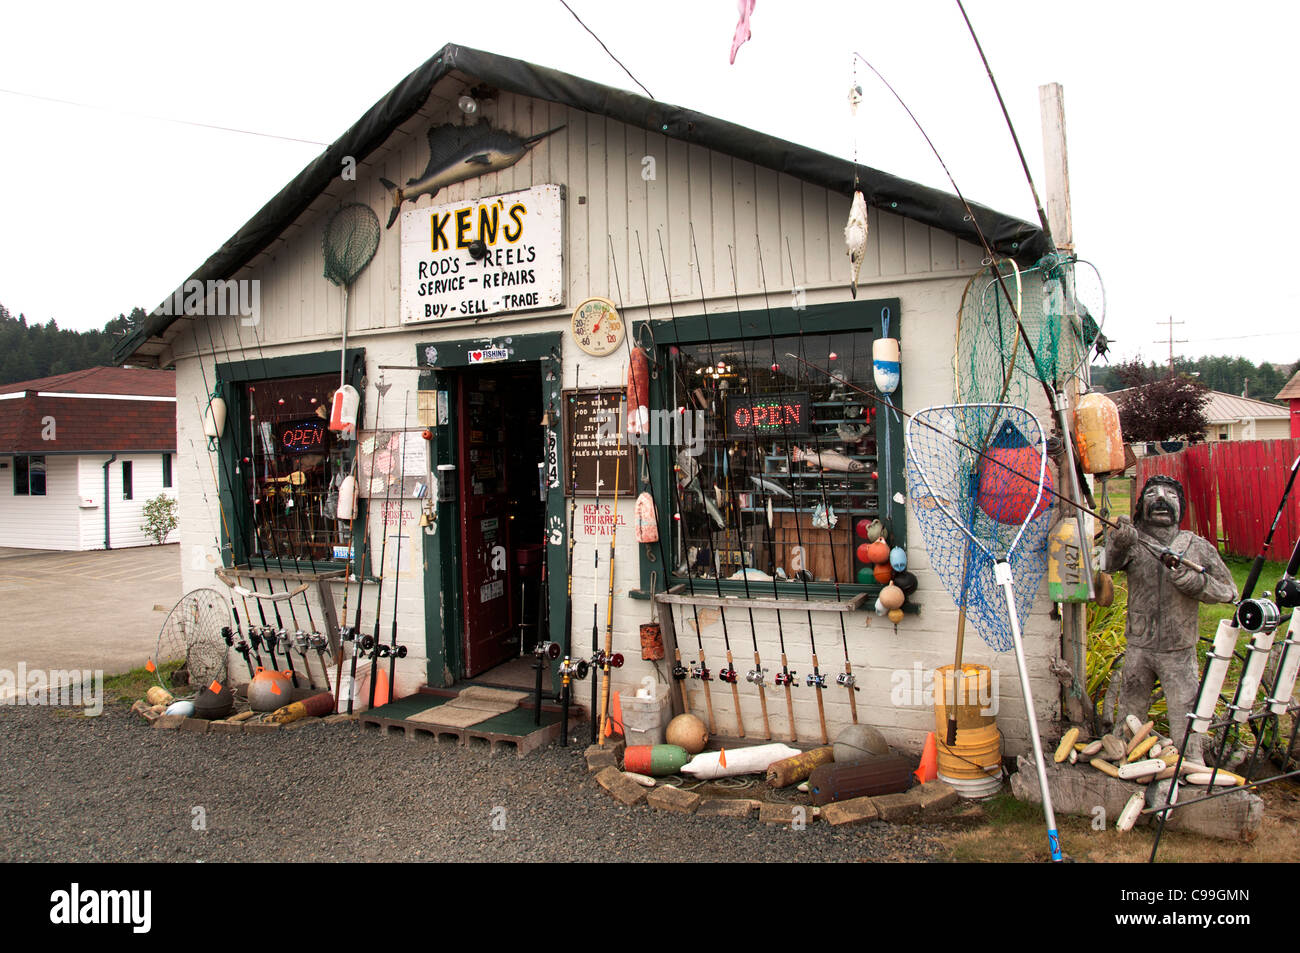 ken 39 s rod 39 s reel s fish and tackle shop reedsport oregon